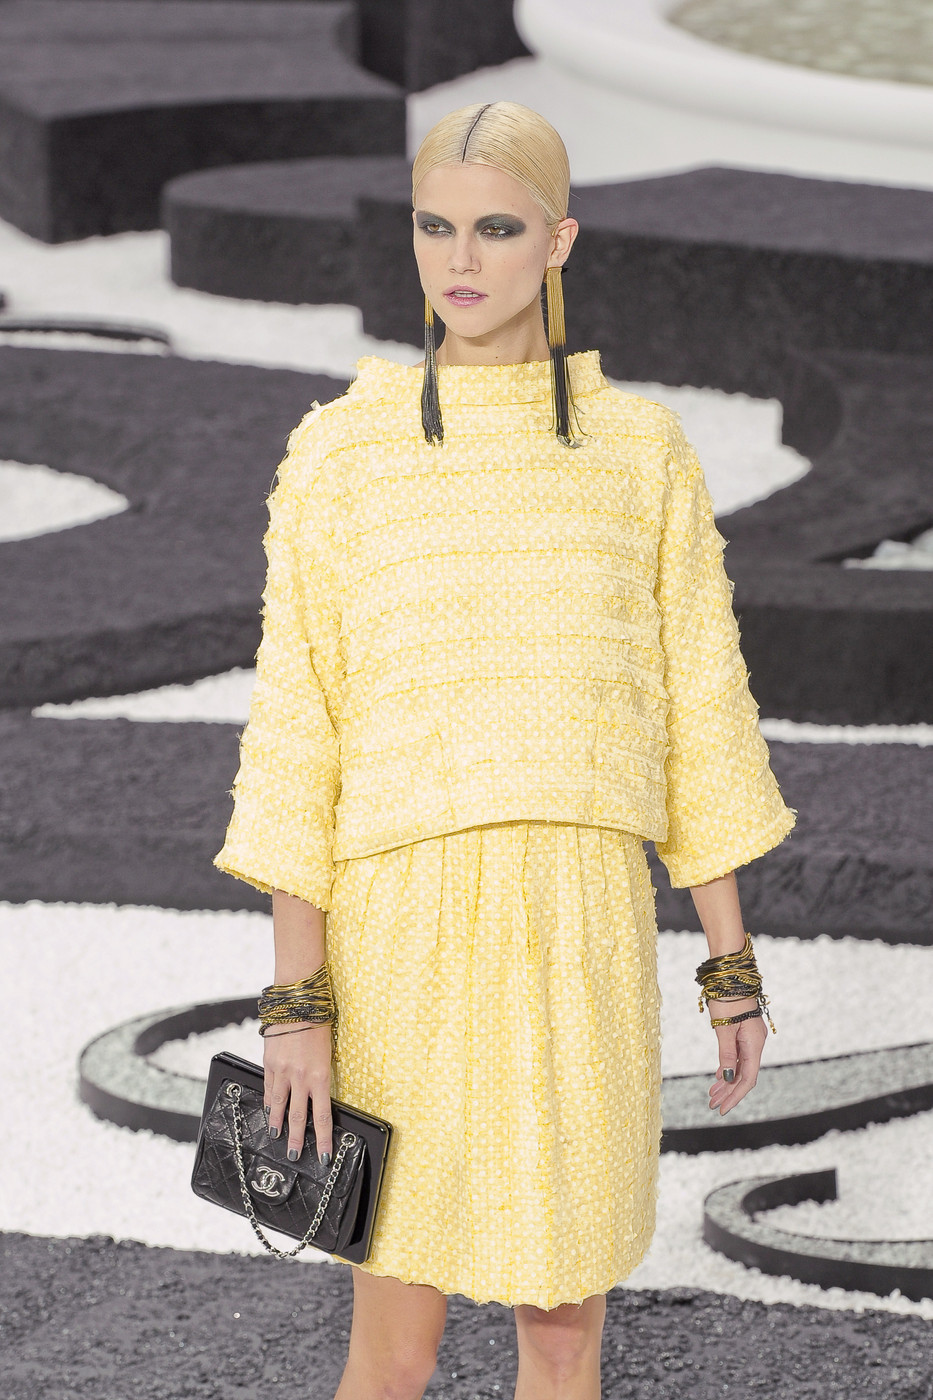 highqualityfashion:   Chanel SS 11